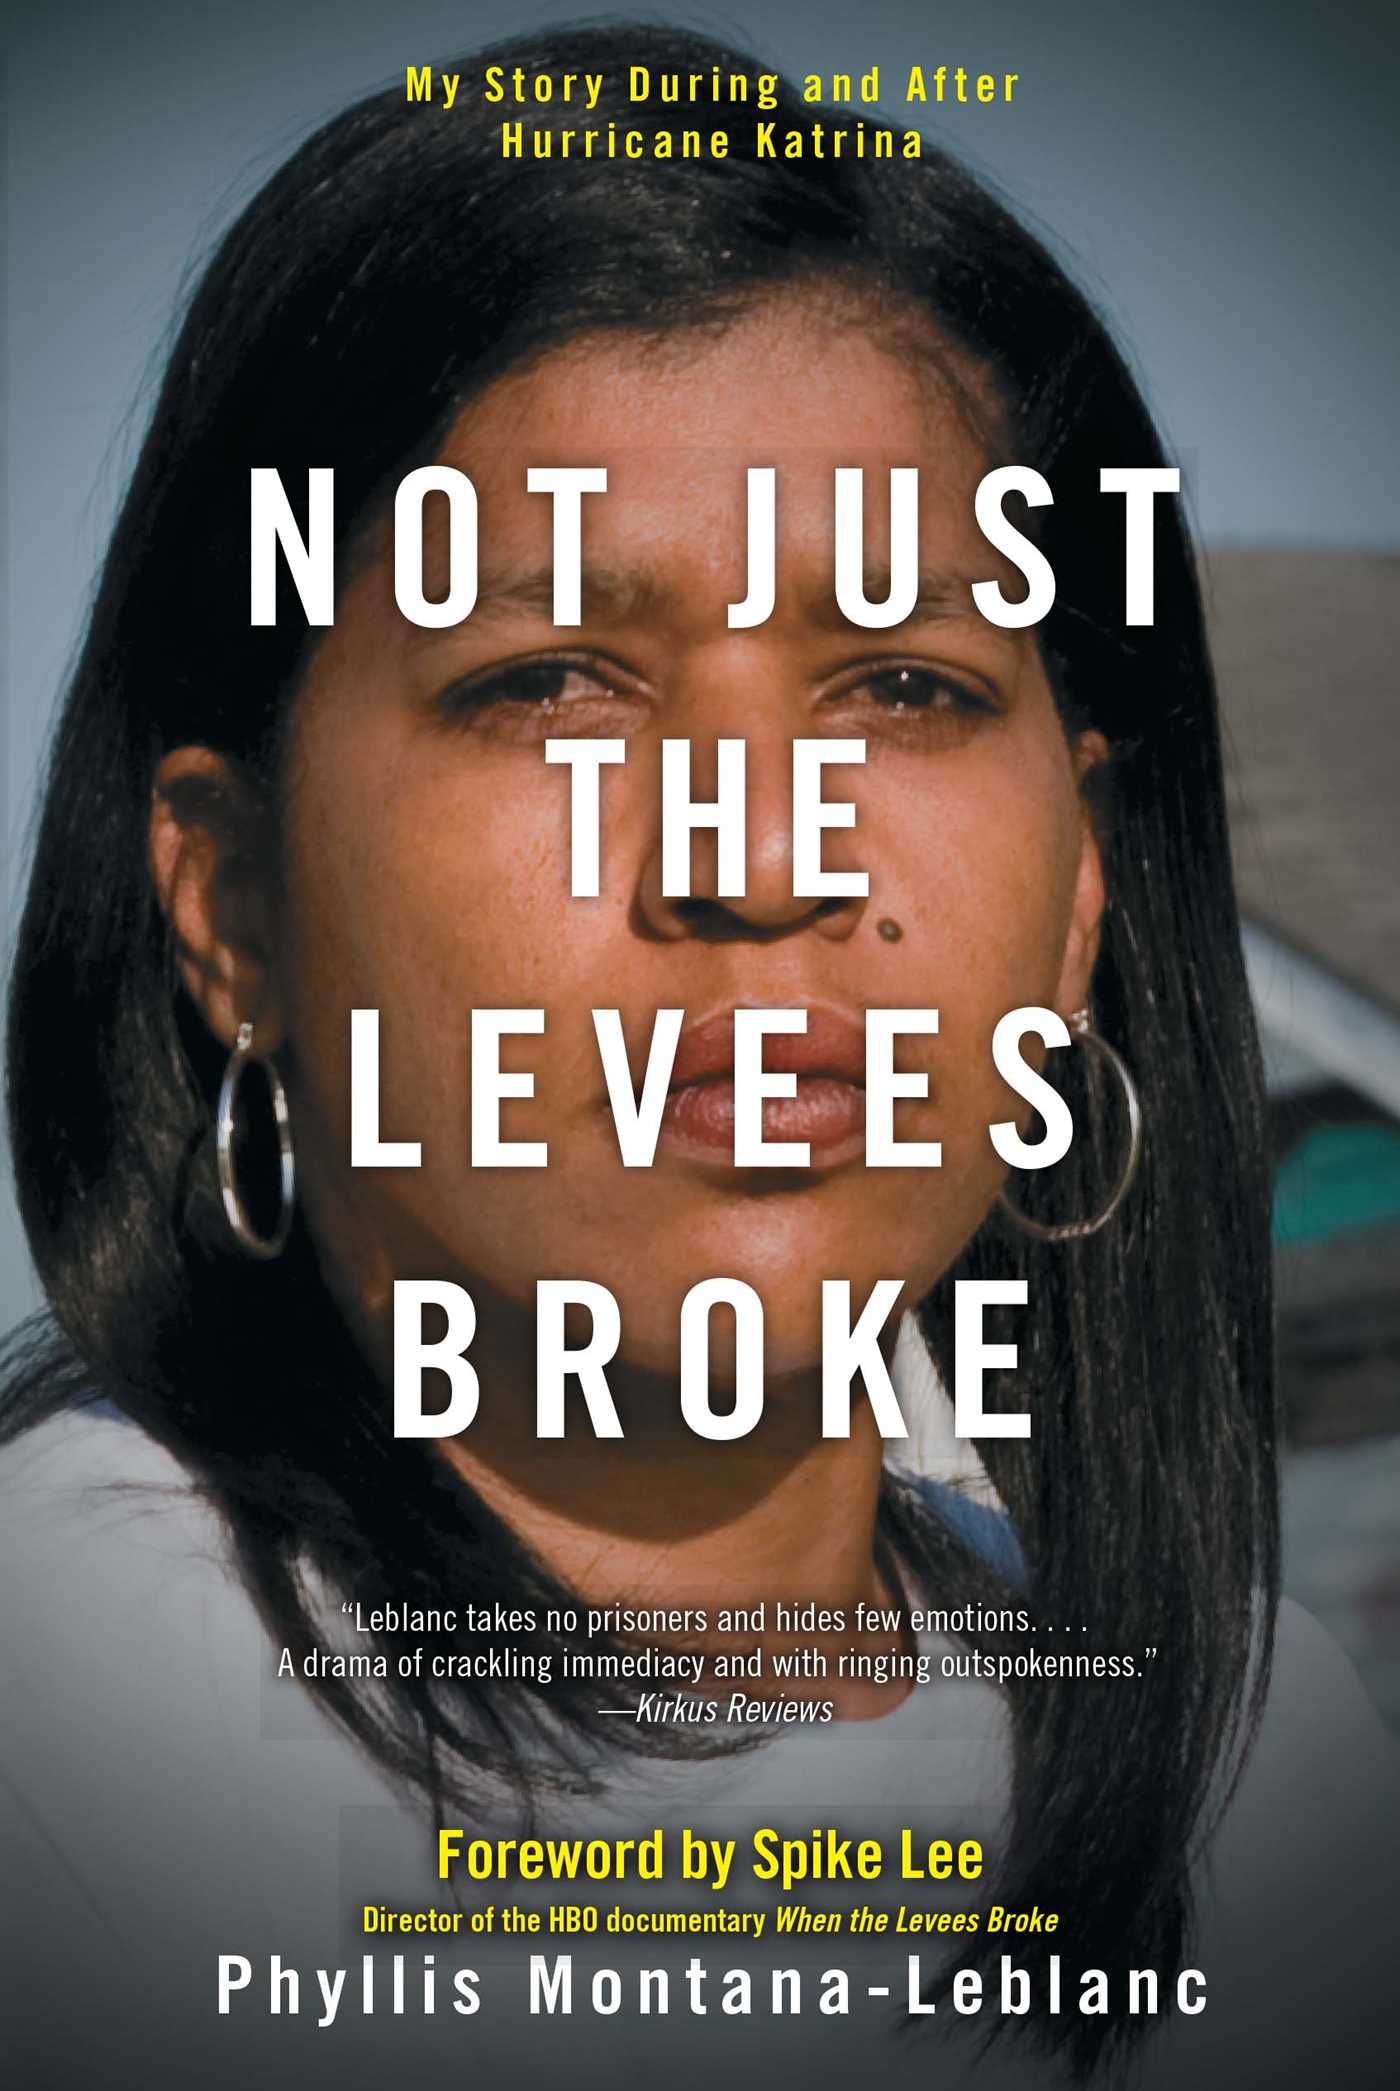 Not just the levees broke 9781416563471 hr